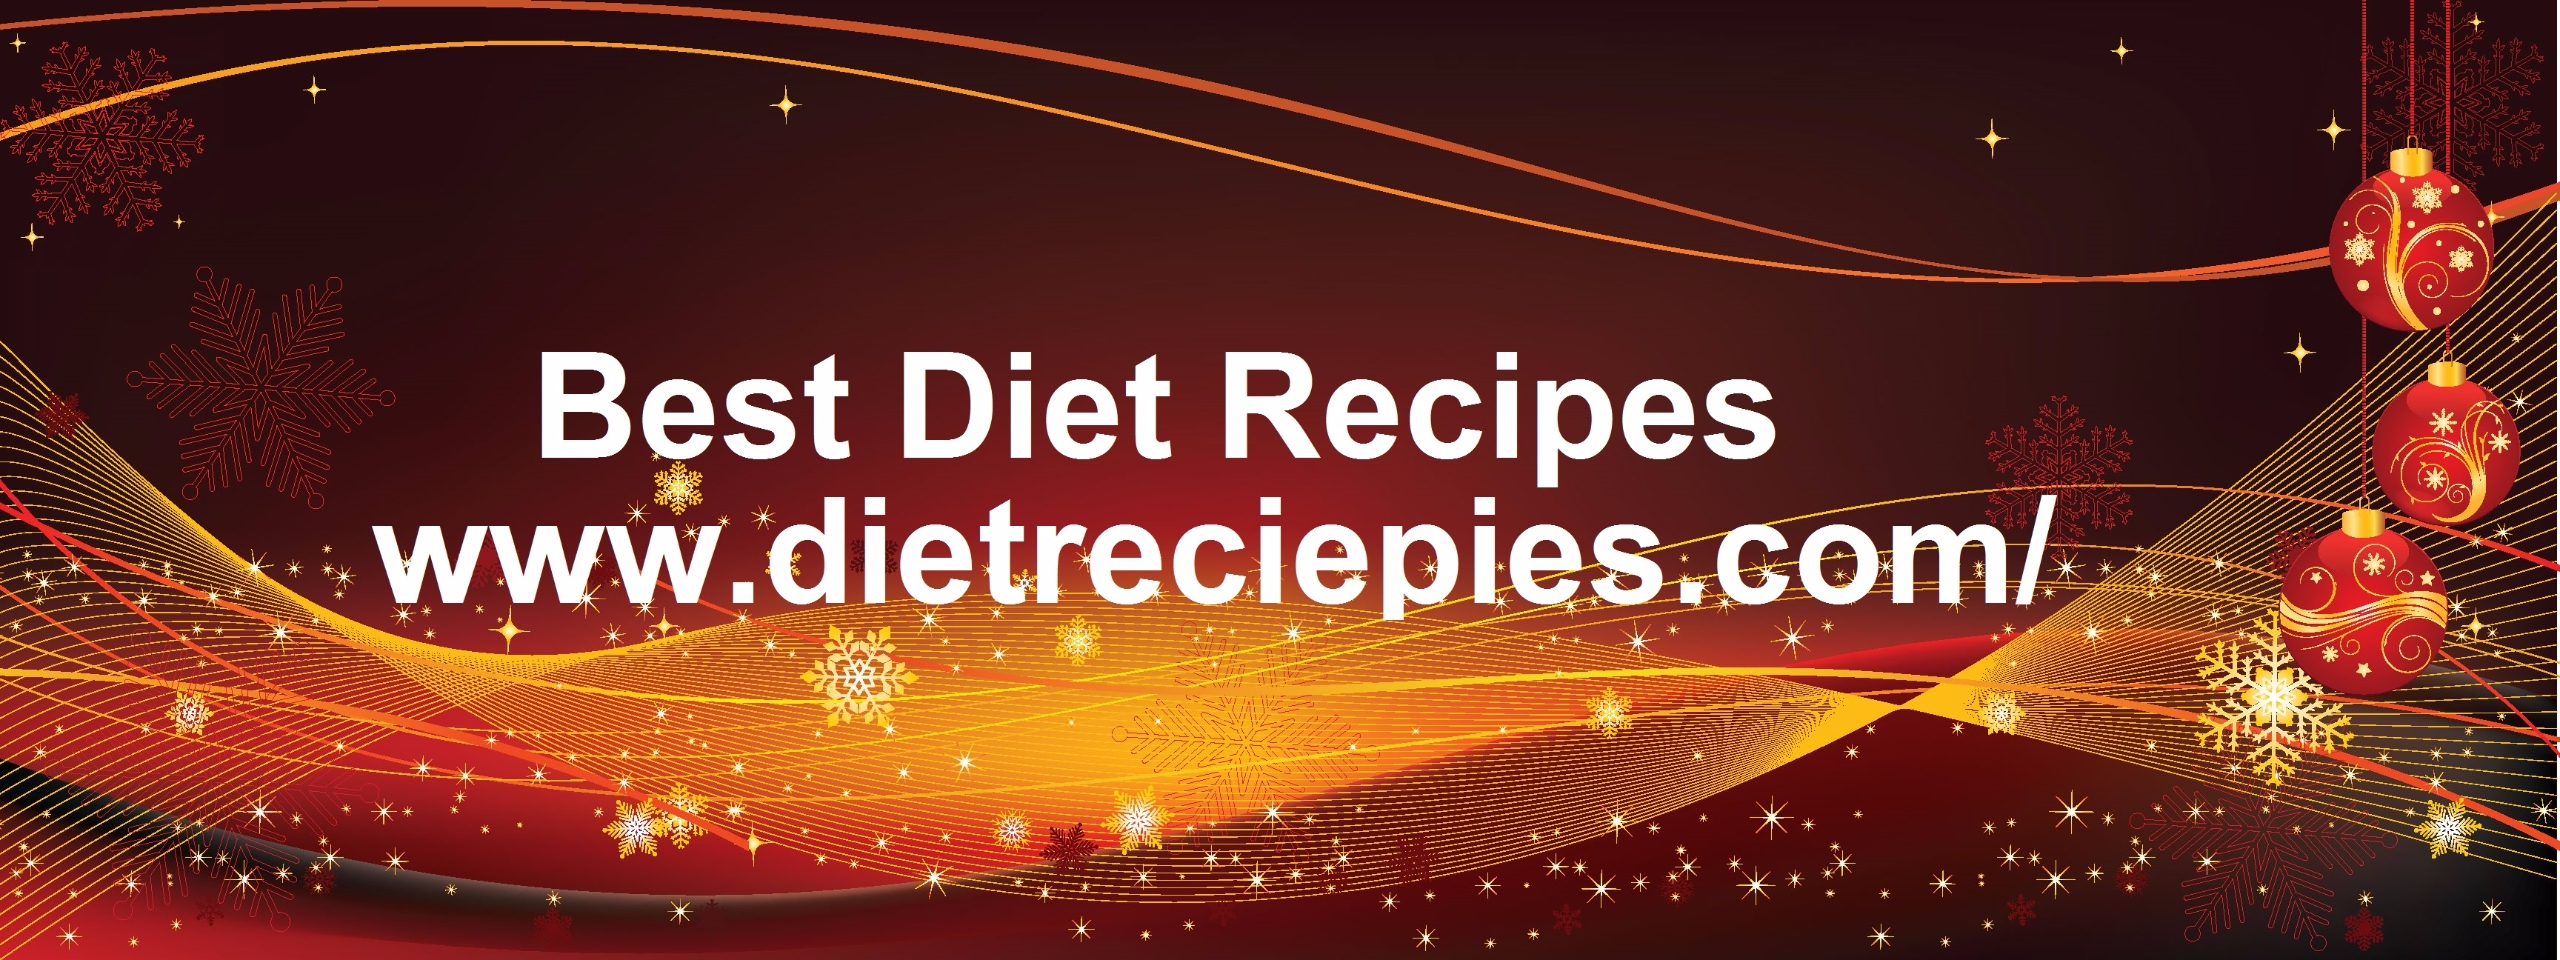 (@dietrecipes) Cover Image